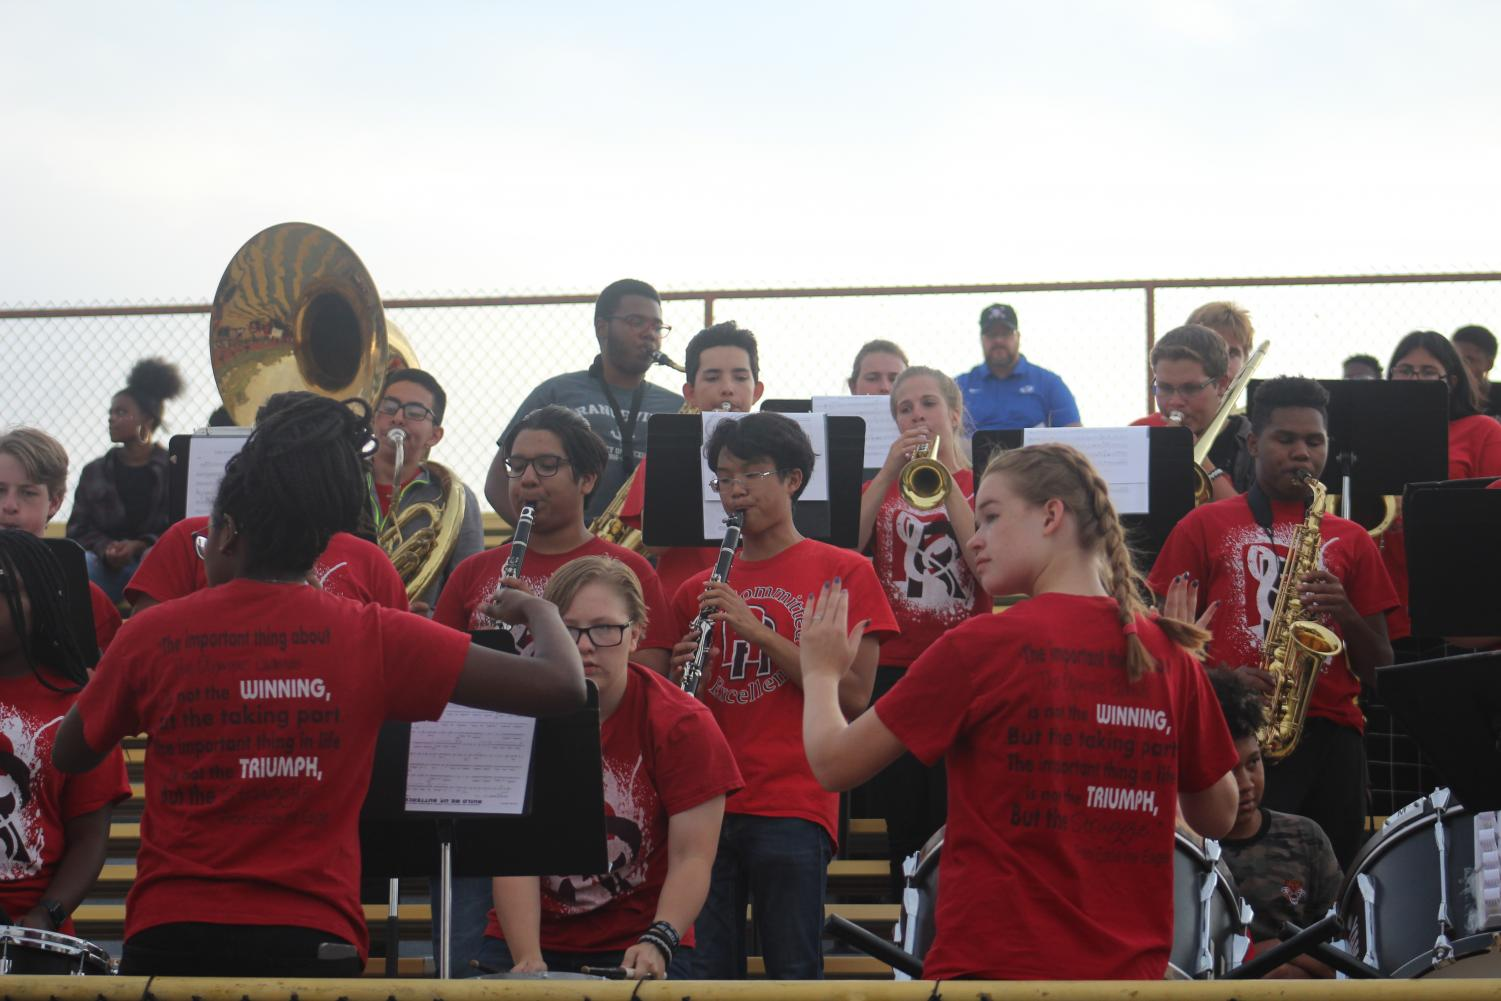 On the left, Senior Aida Wates and on the right, Senior Katie Finell conduct the band while they played the RHS Fight Song after a touchdown on the football game on Thursday.